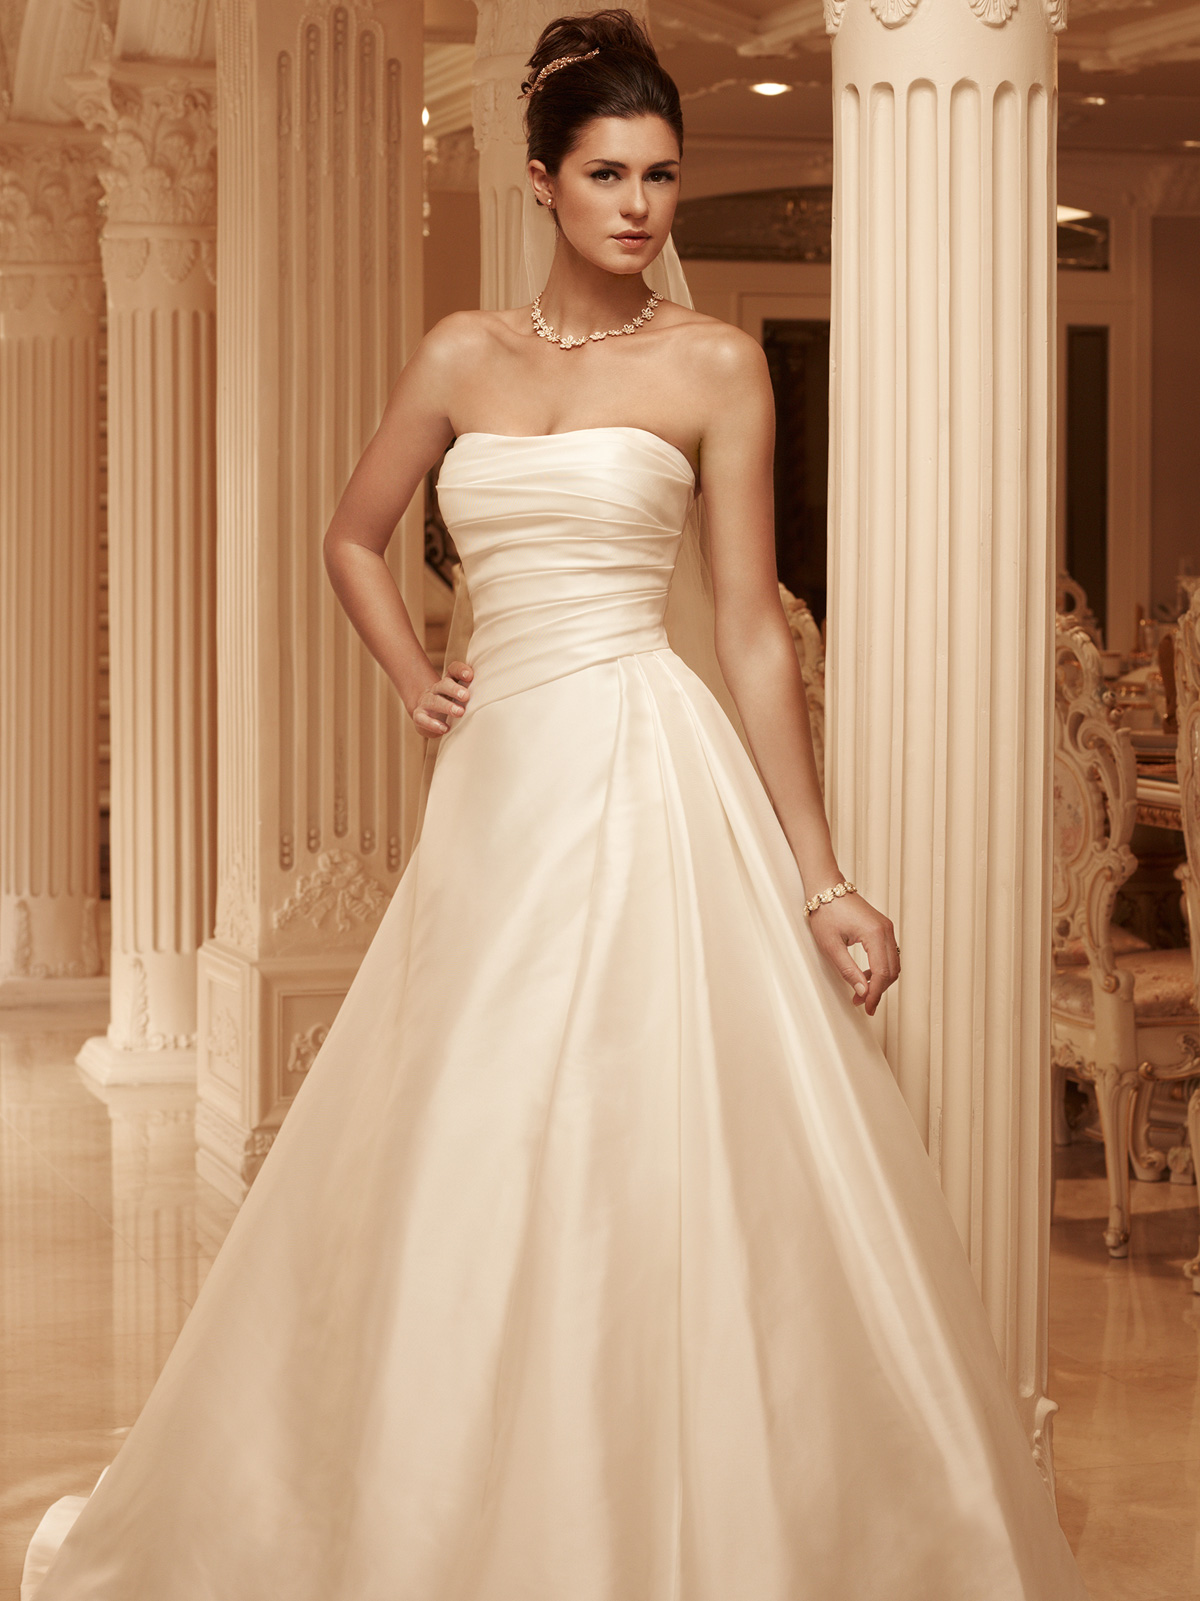 Strapless Full A-line Casablanca Bridal Gown 2101|DimitraDesigns.com